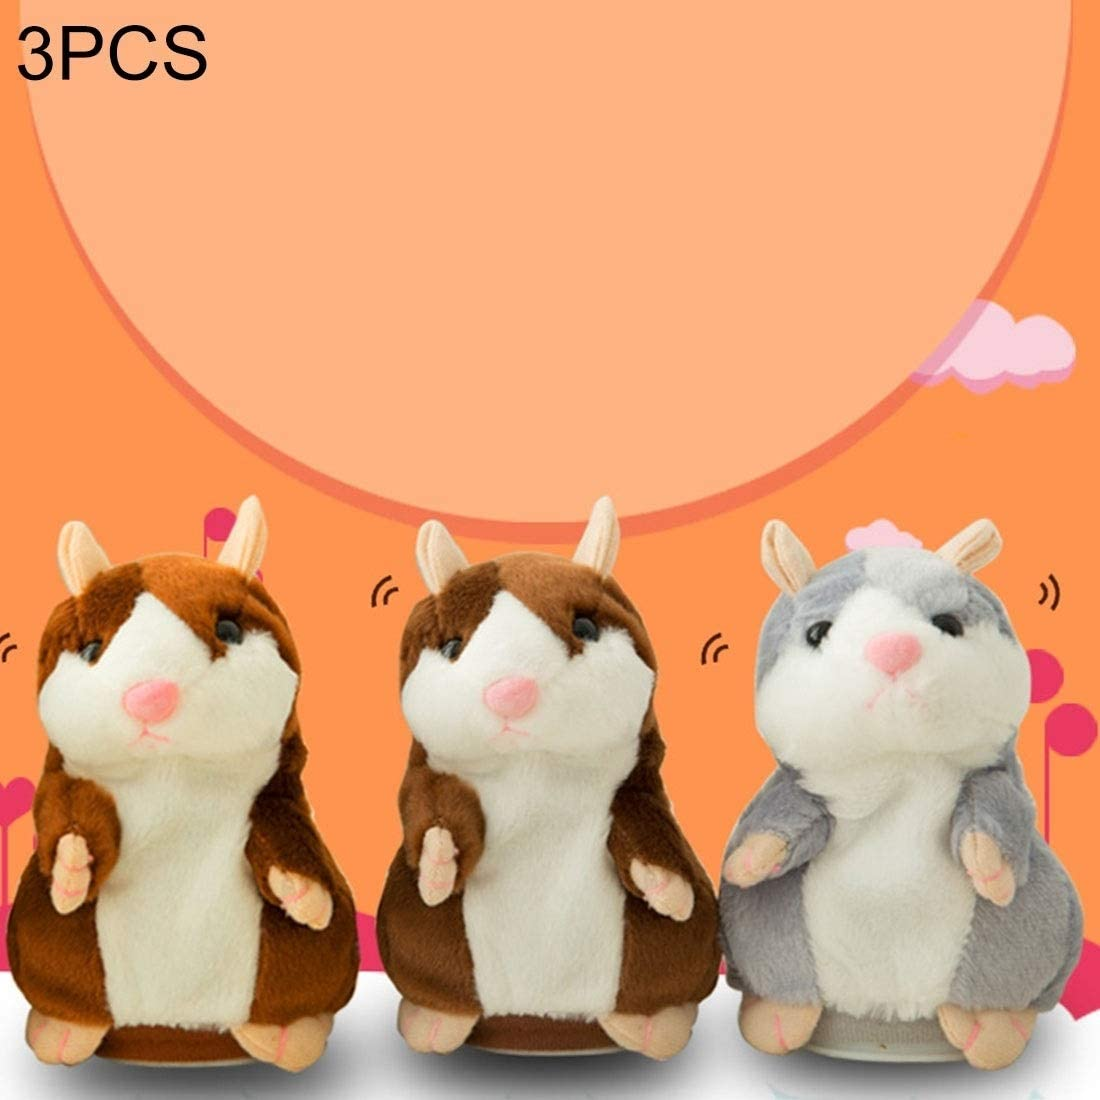 Intelligence Toys Great 3 PCS Educational Toys Cartoon Hamster Cute Become Sound Recording Voles Children Birthday Gift, Random Color Delivery, Size: 1588cm